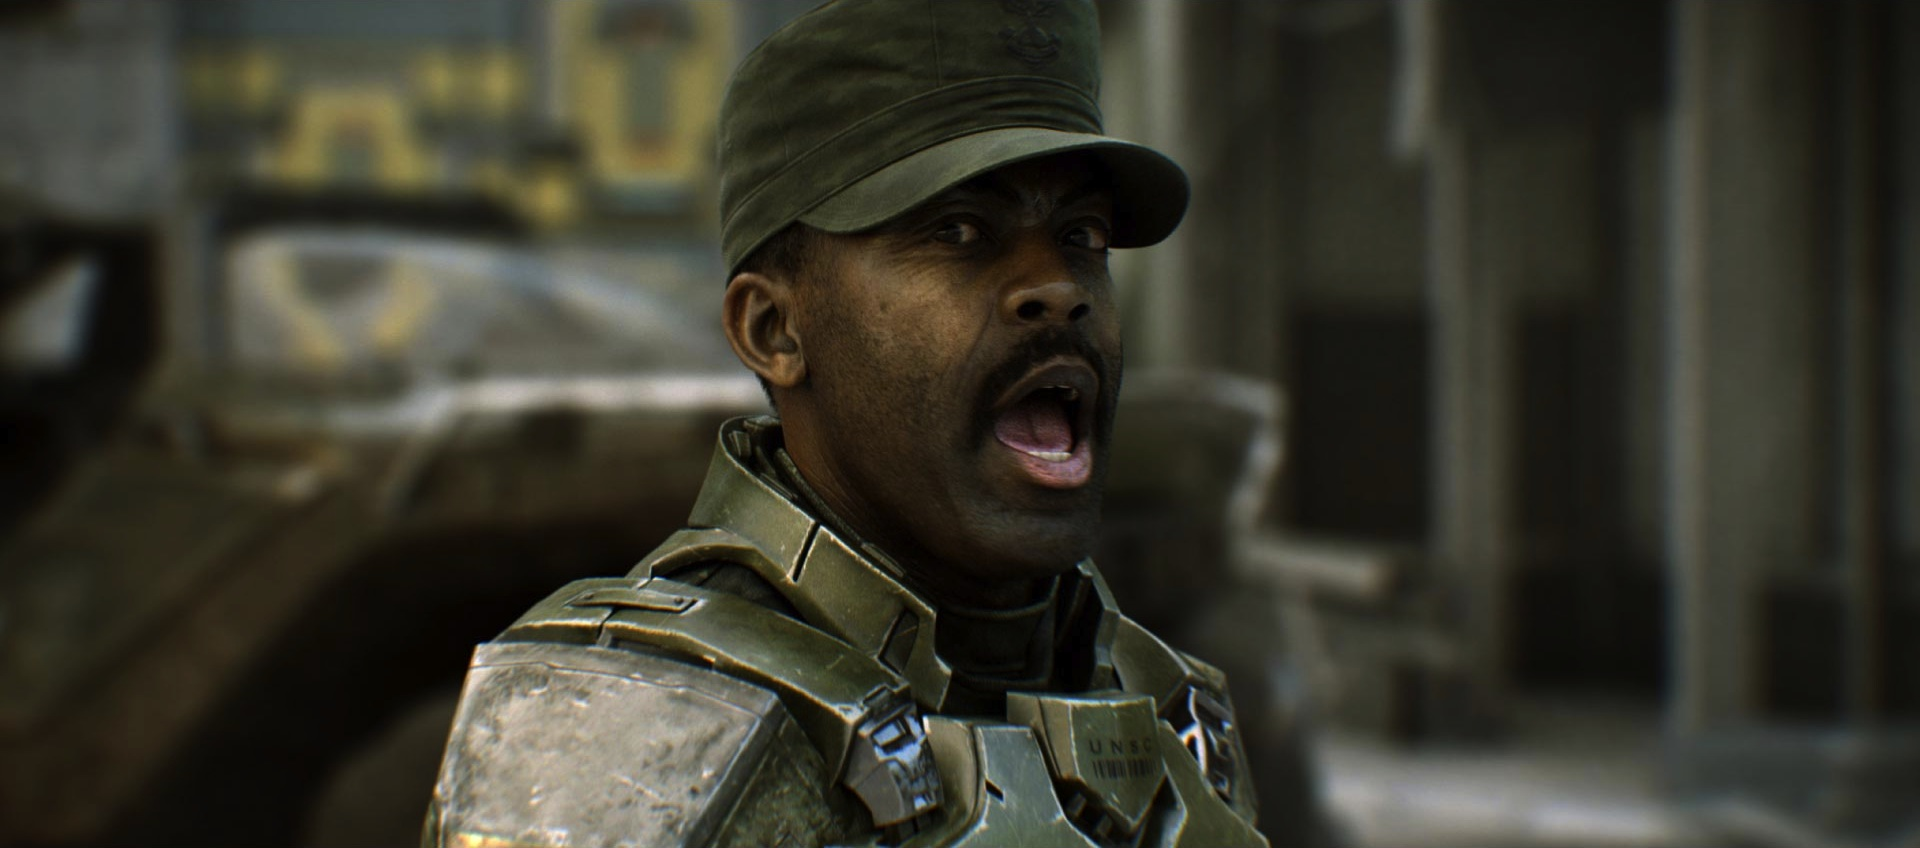 H2A_-_Johnson.png